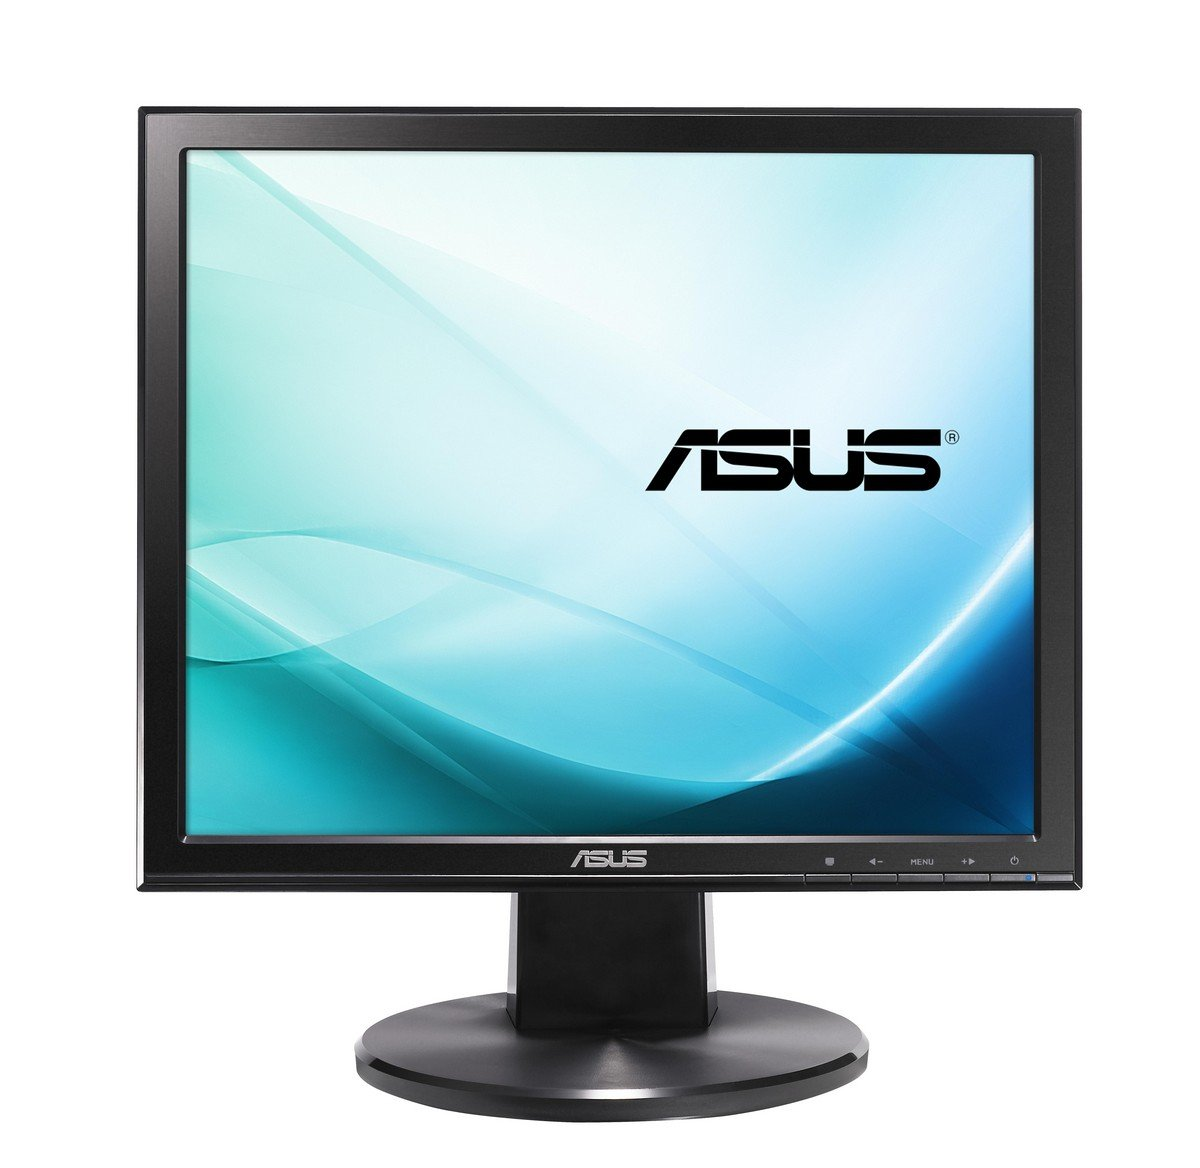 "ASUS VB199T-P 19"" SXGA 1280x1024 IPS DVI VGA Back-lit LED Monitor"